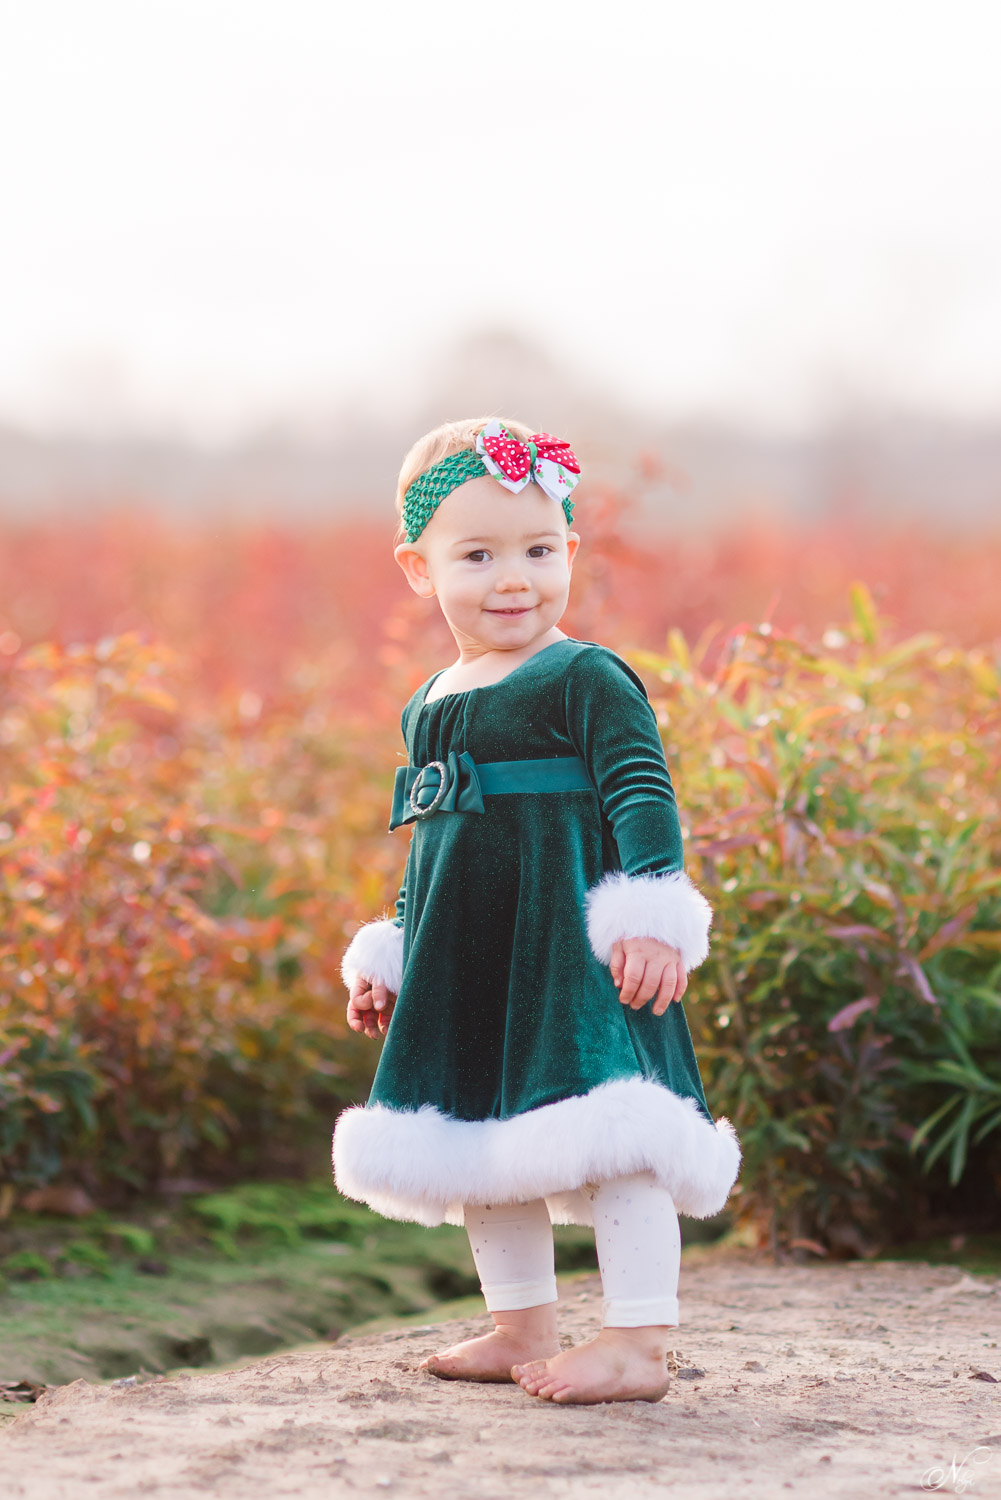 18 month old in green velvet dress and Christmas headband